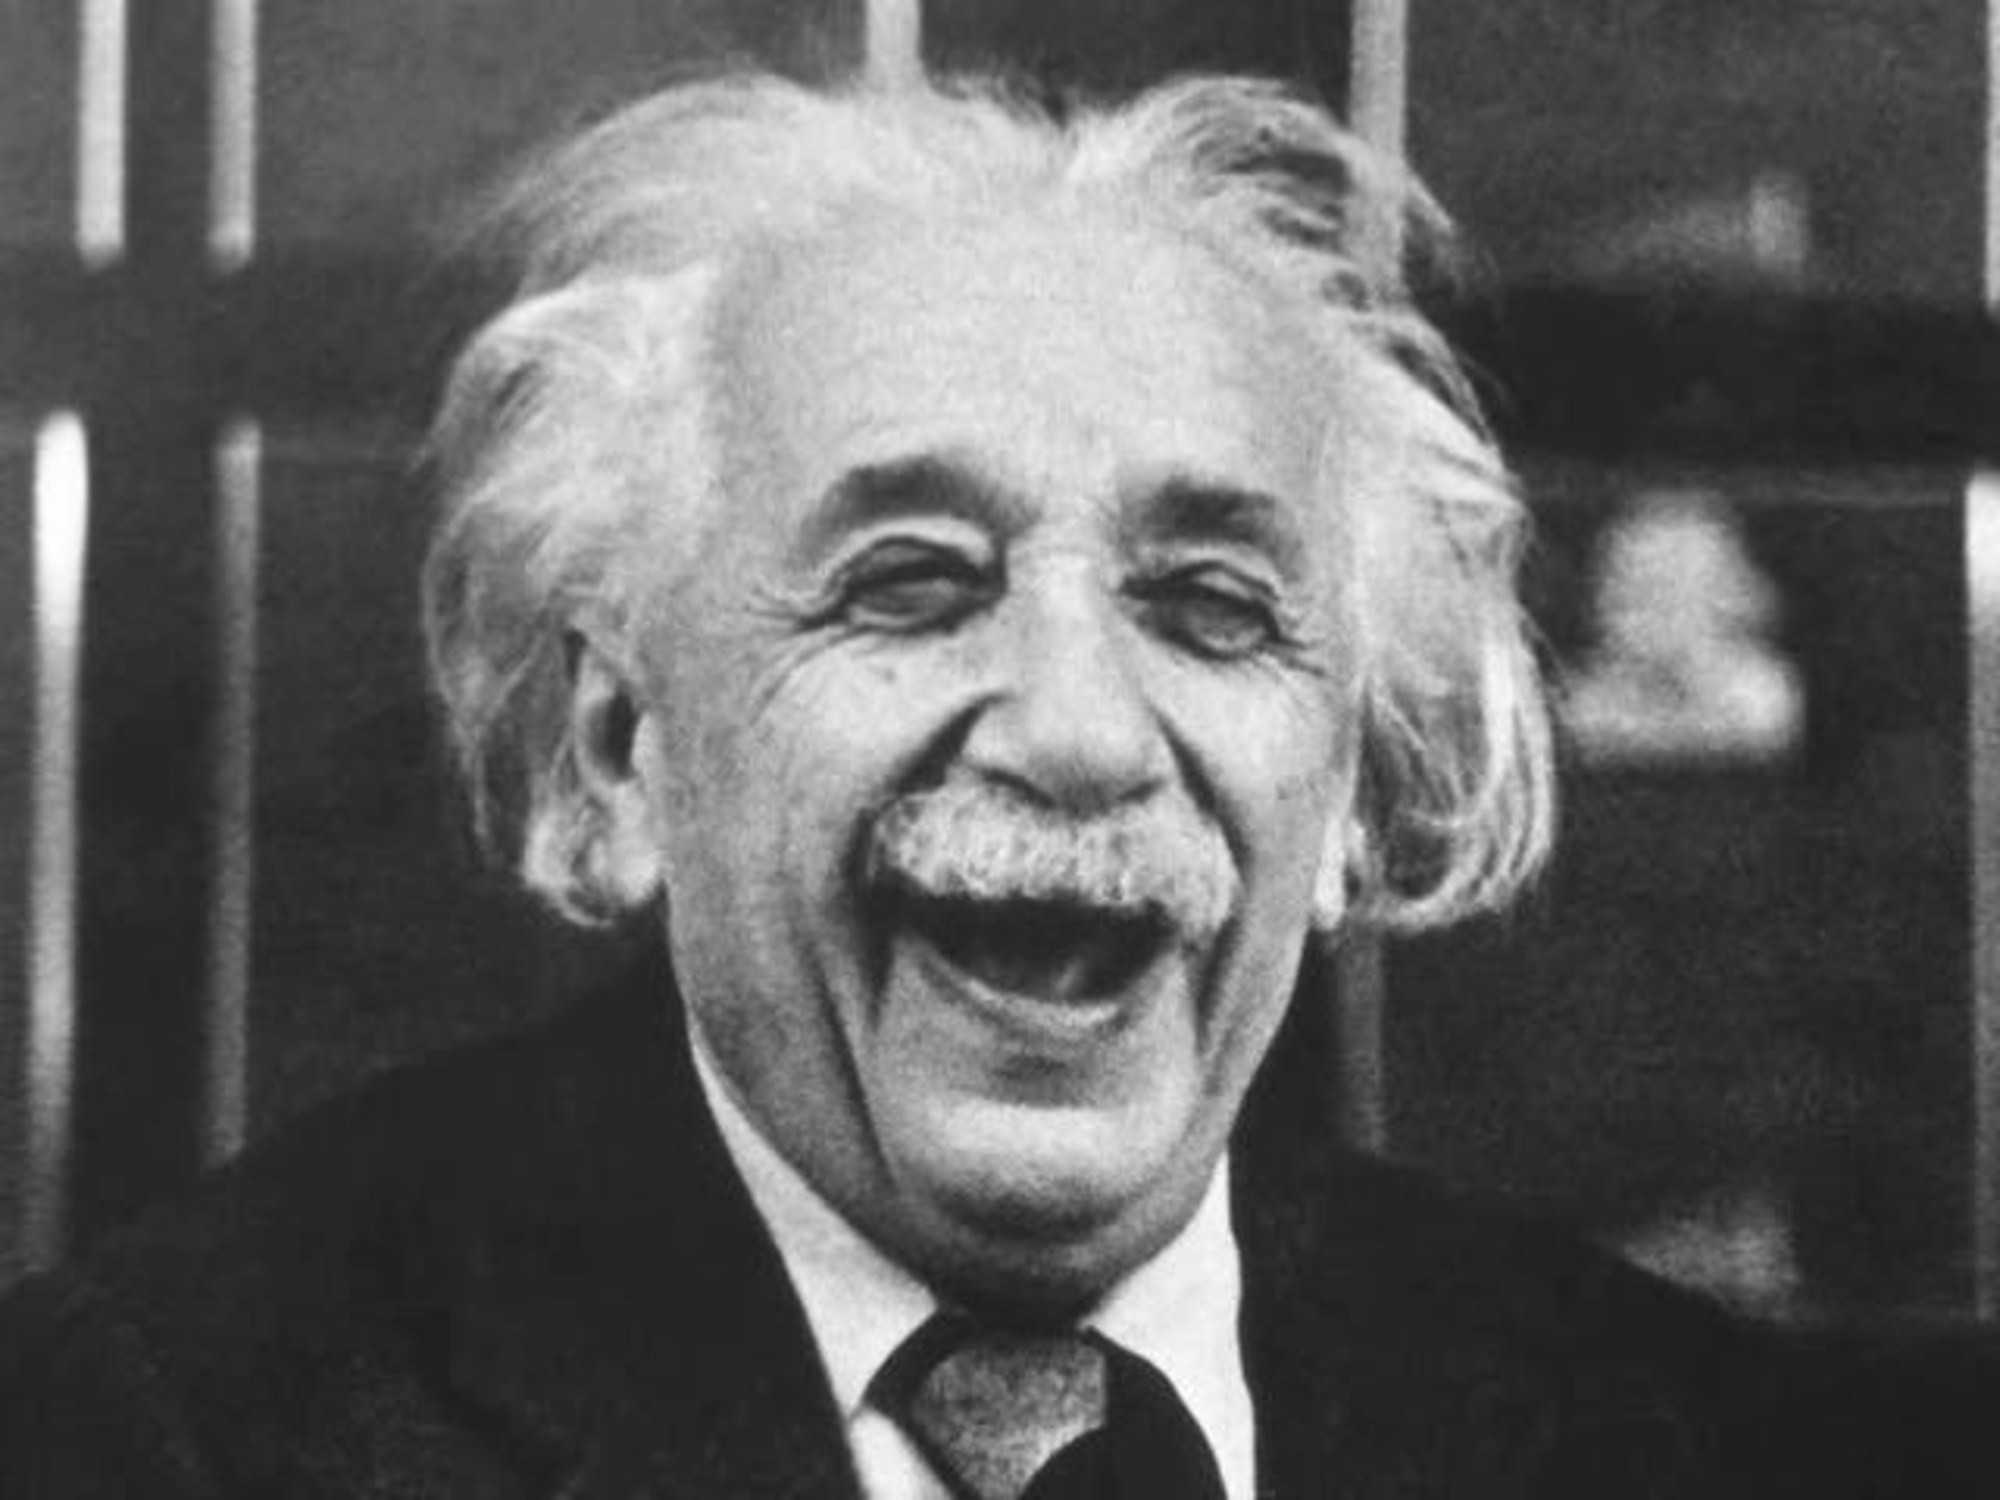 How To Become More Intelligent According To Einstein